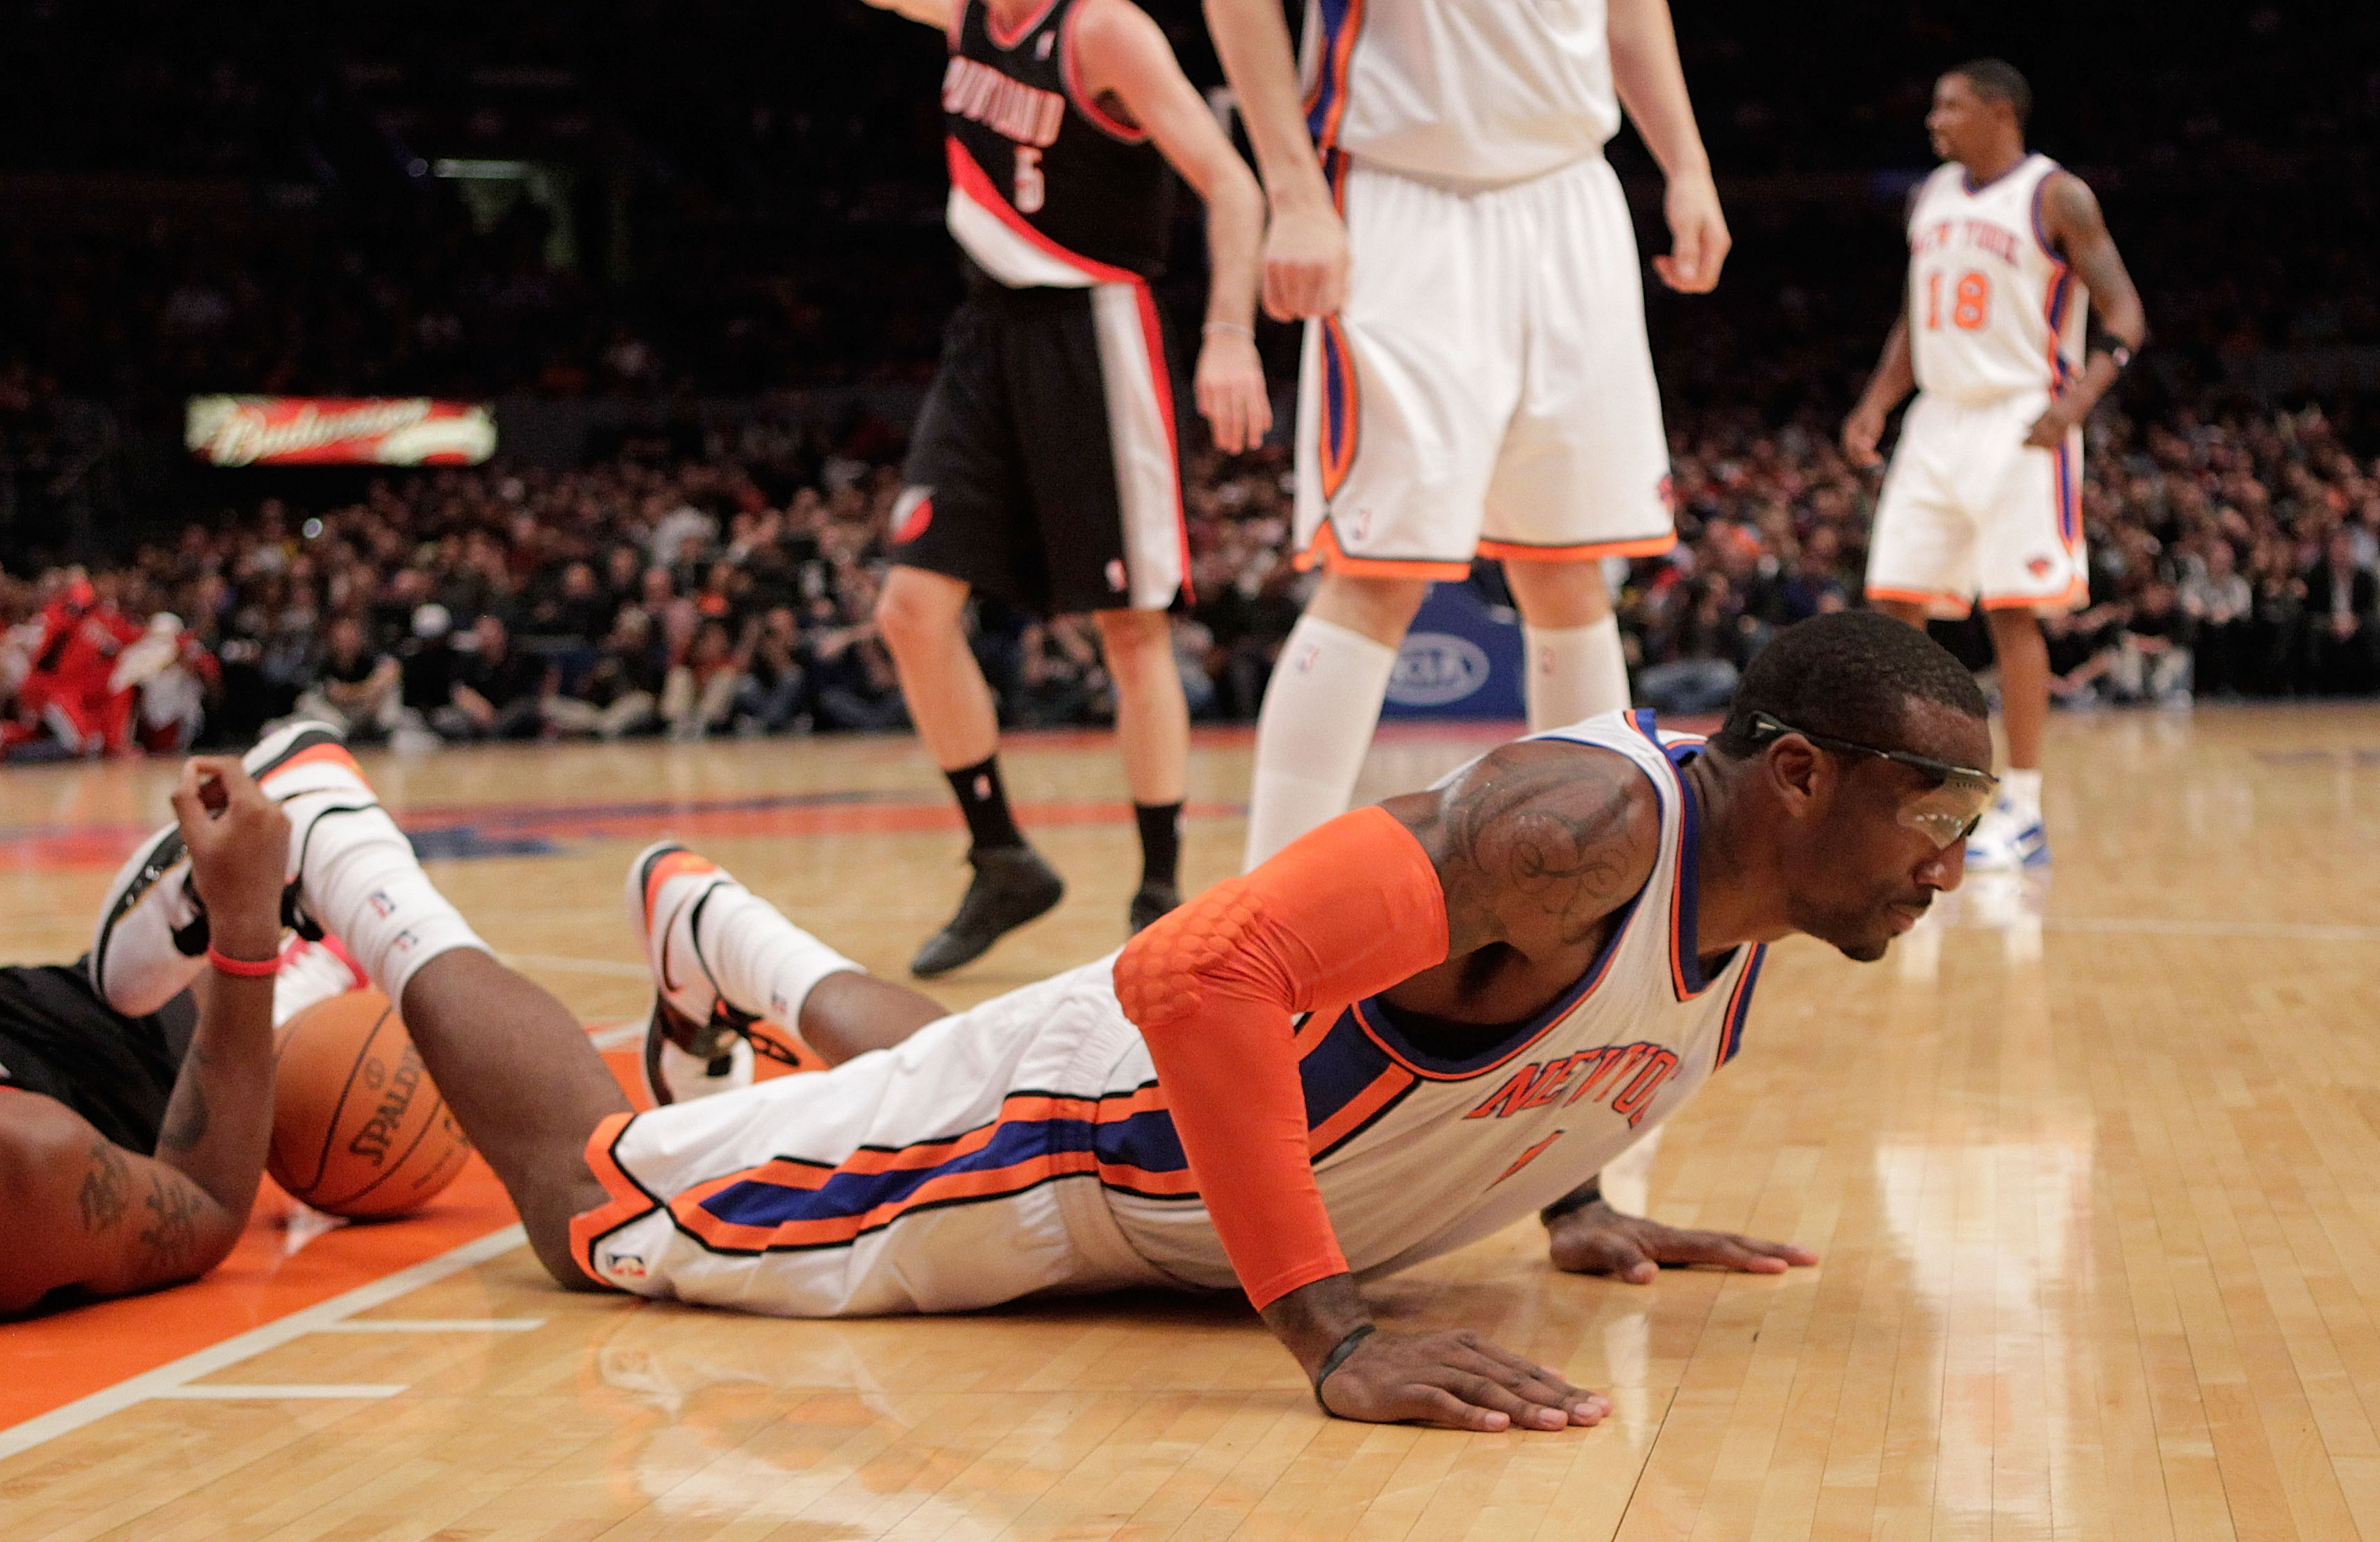 NEW YORK - OCTOBER 30:  Amar'e Stoudemire #1 of the New York Knicks on the ground after being called for a charging foul against the Portland Trail Blazers at Madison Square Garden on October 30, 2010 in New York City. NOTE TO USER: User expressly acknowl